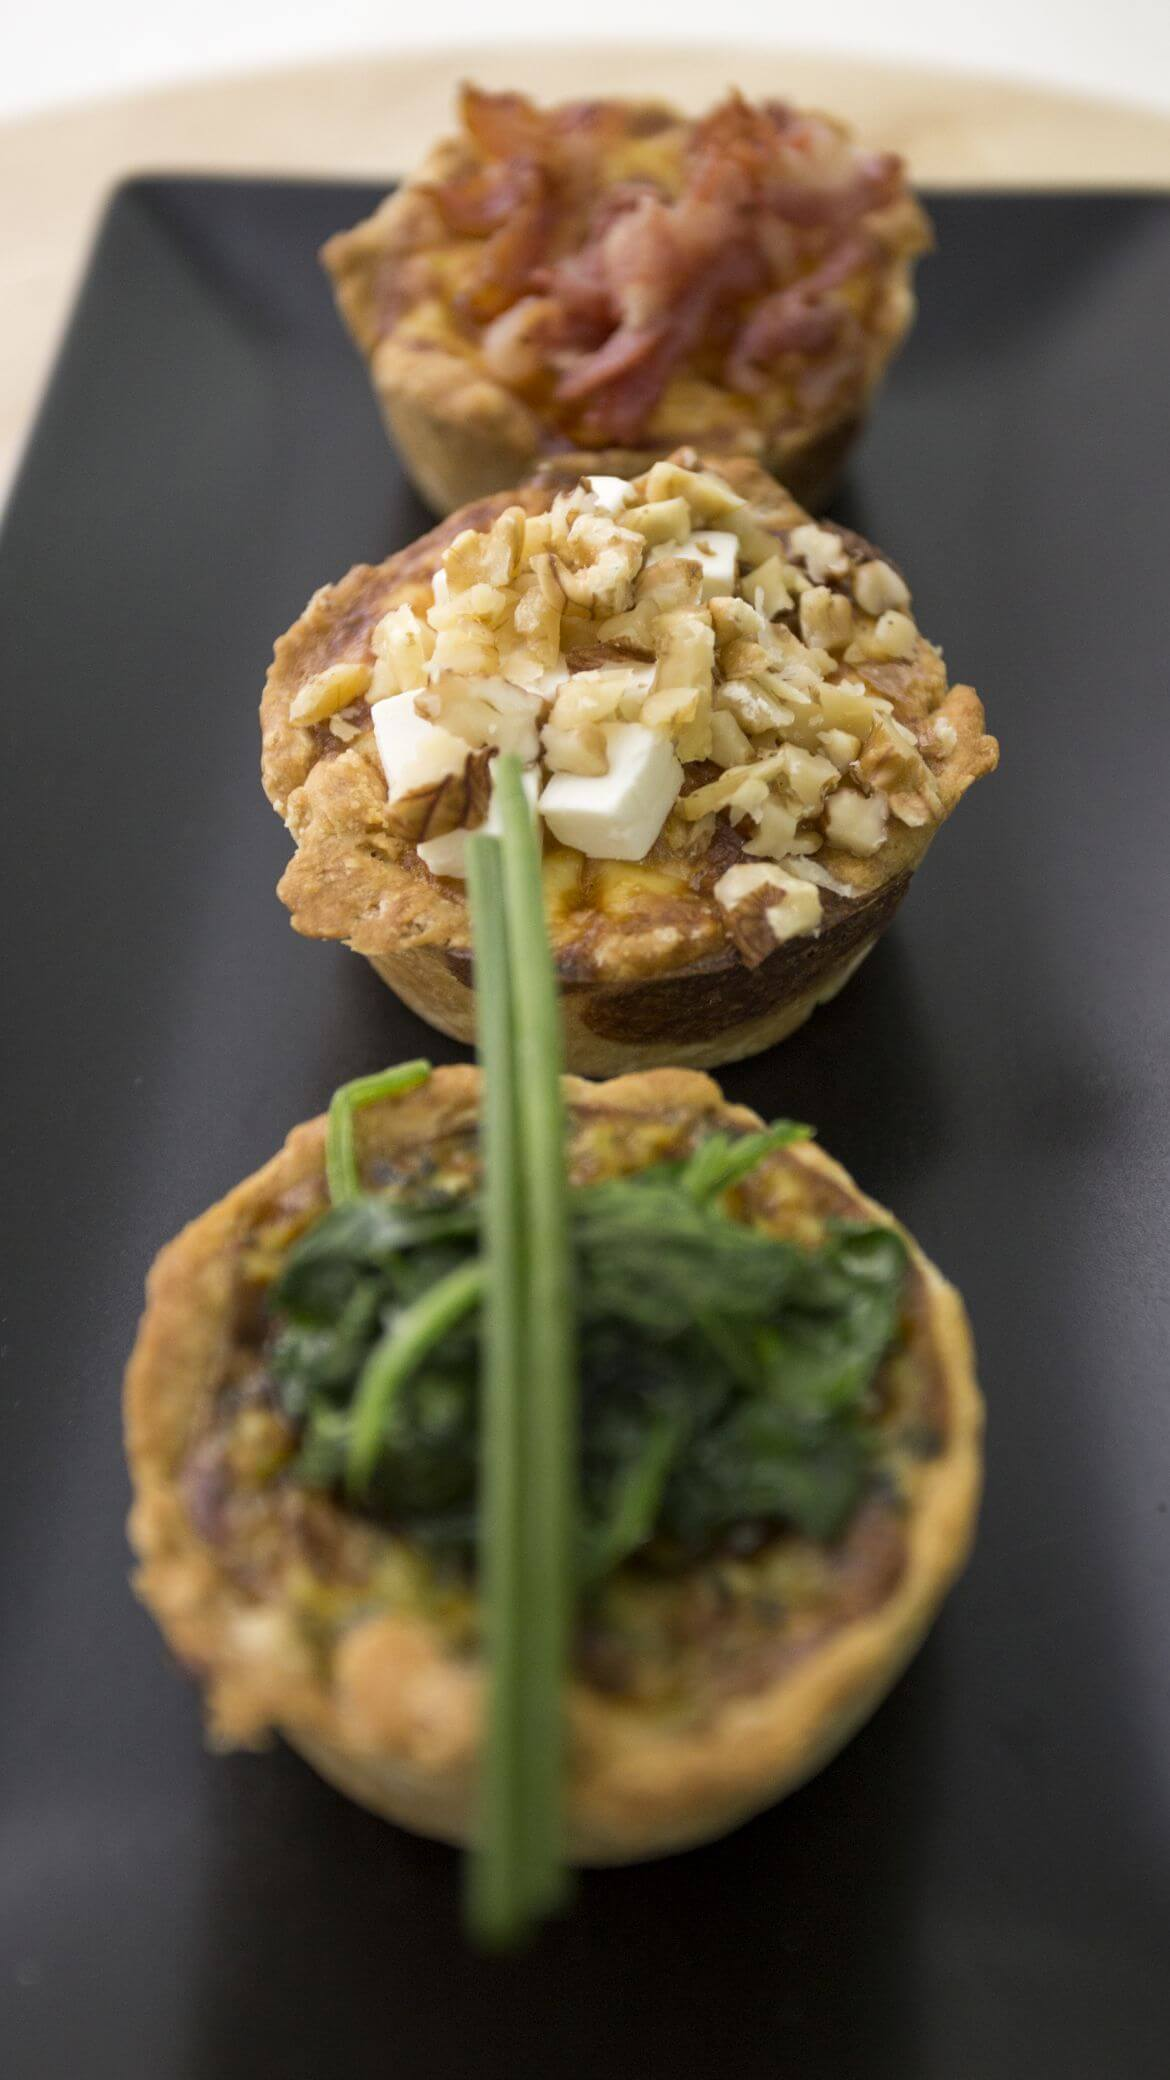 In Bucate - Mini quiche